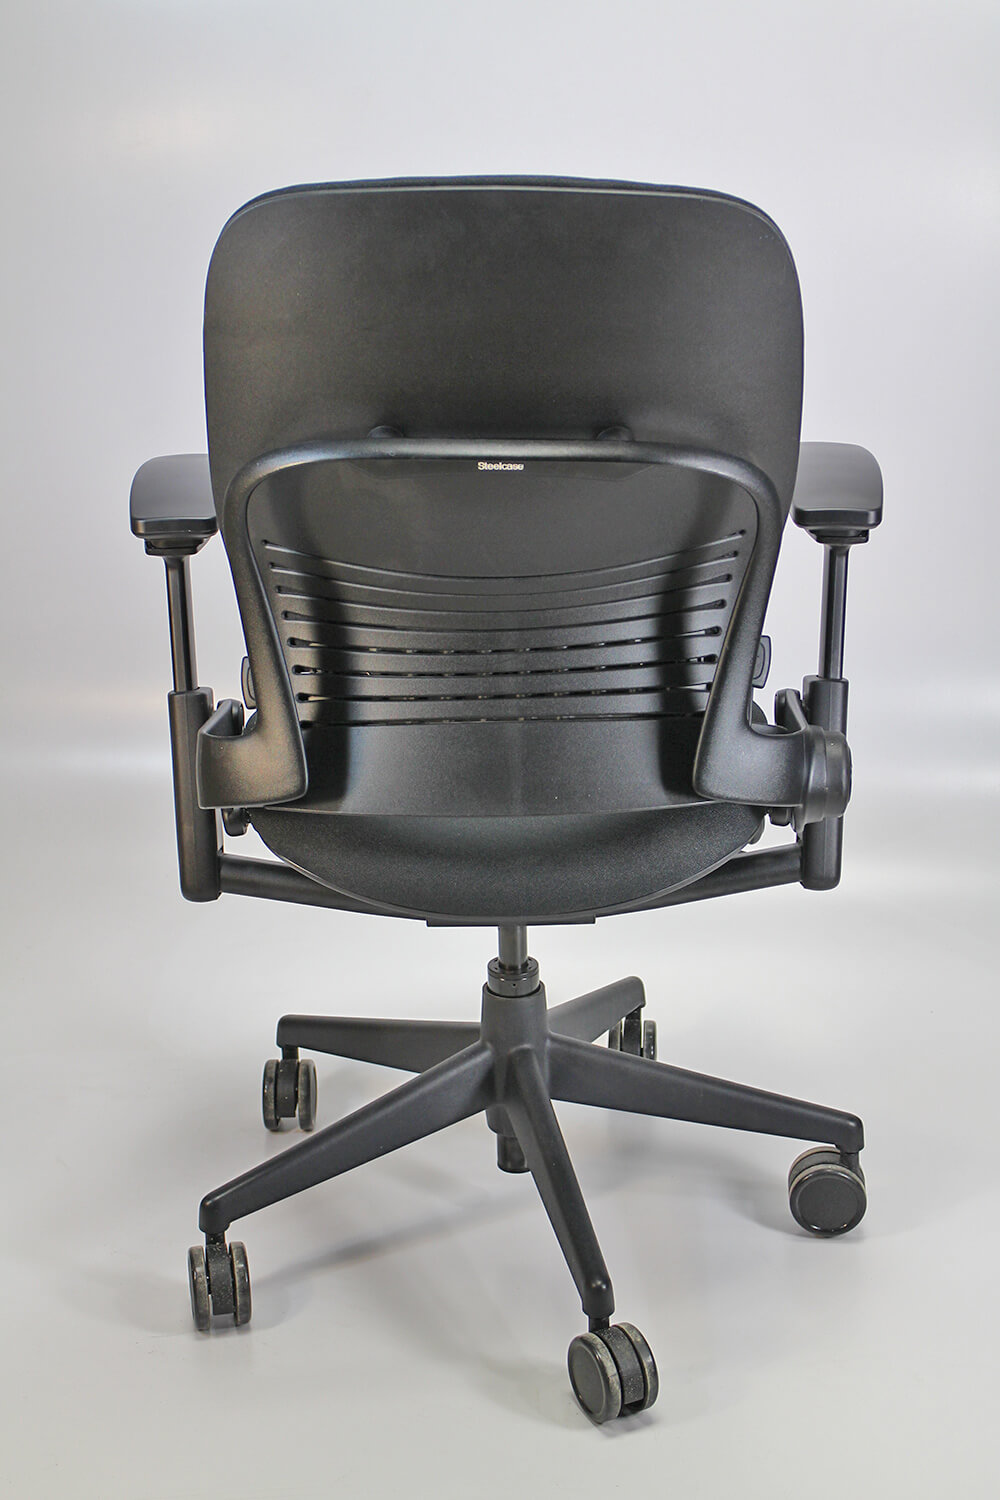 Steelcase leap v2 back view